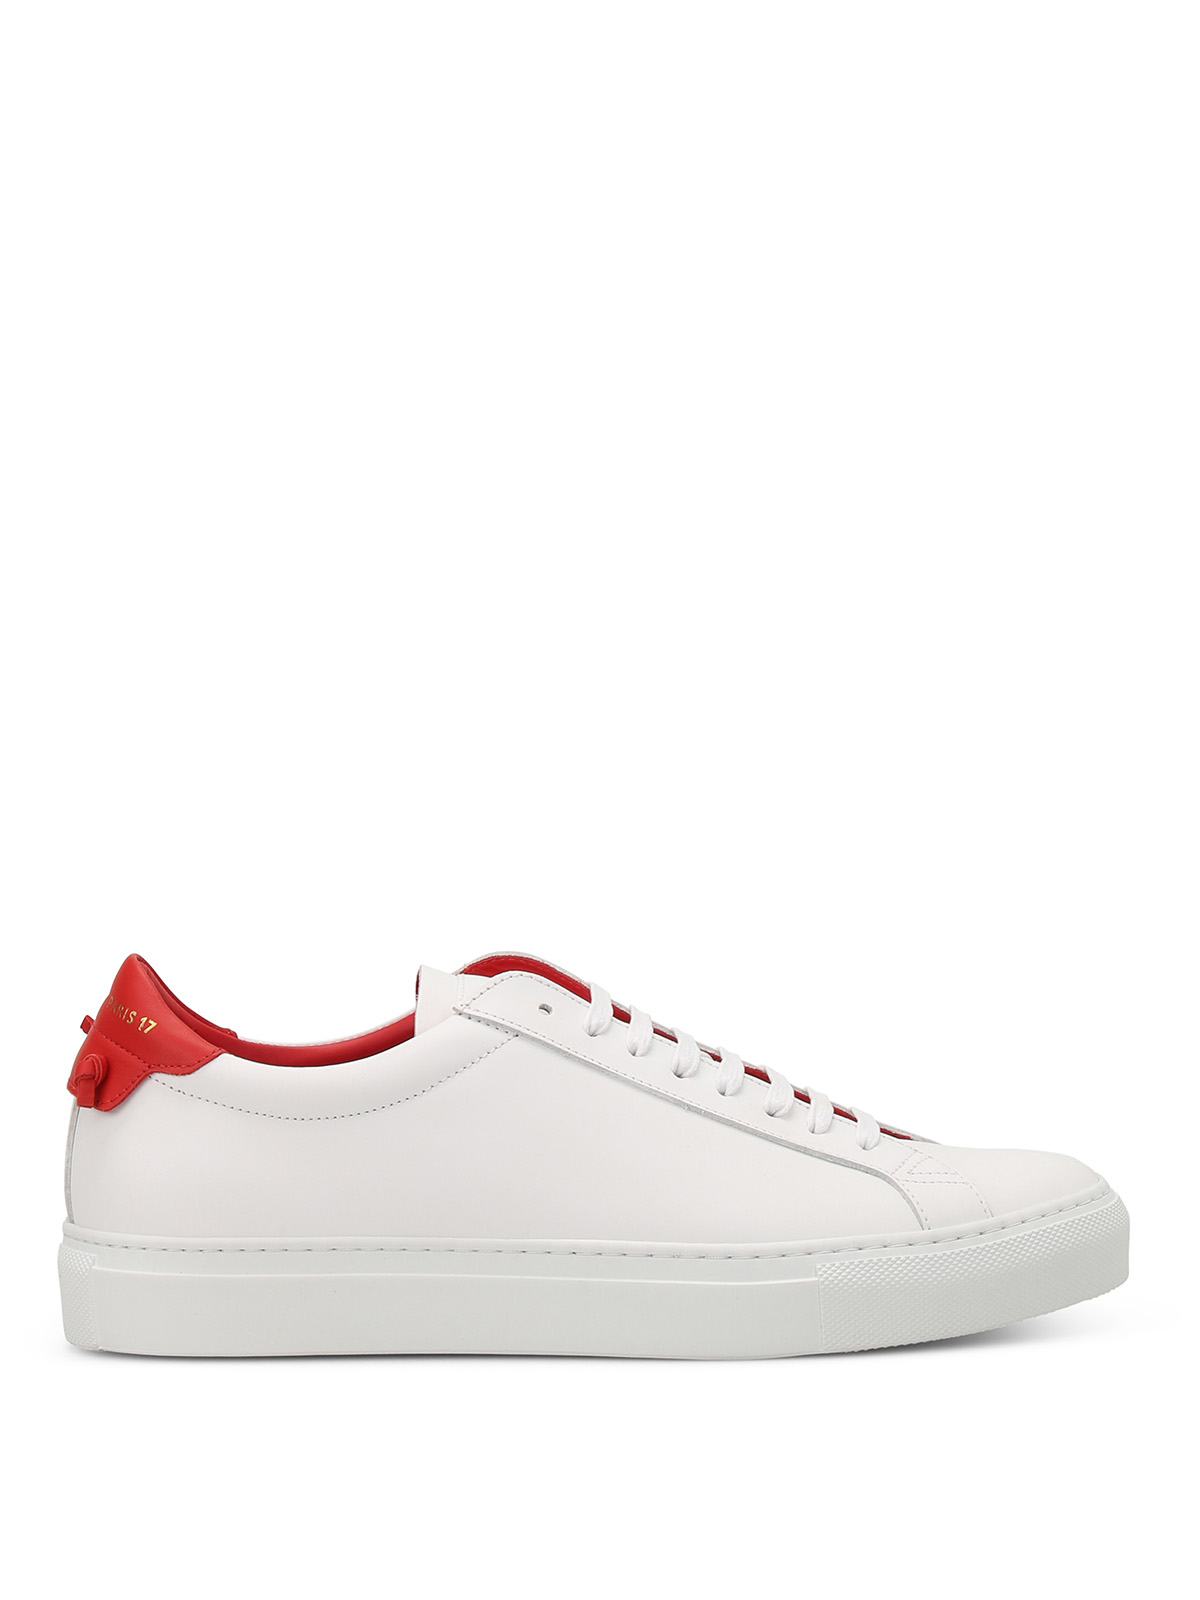 Givenchy low BM08219876 Style top trainers sneakers Urban 112 jR3AL45